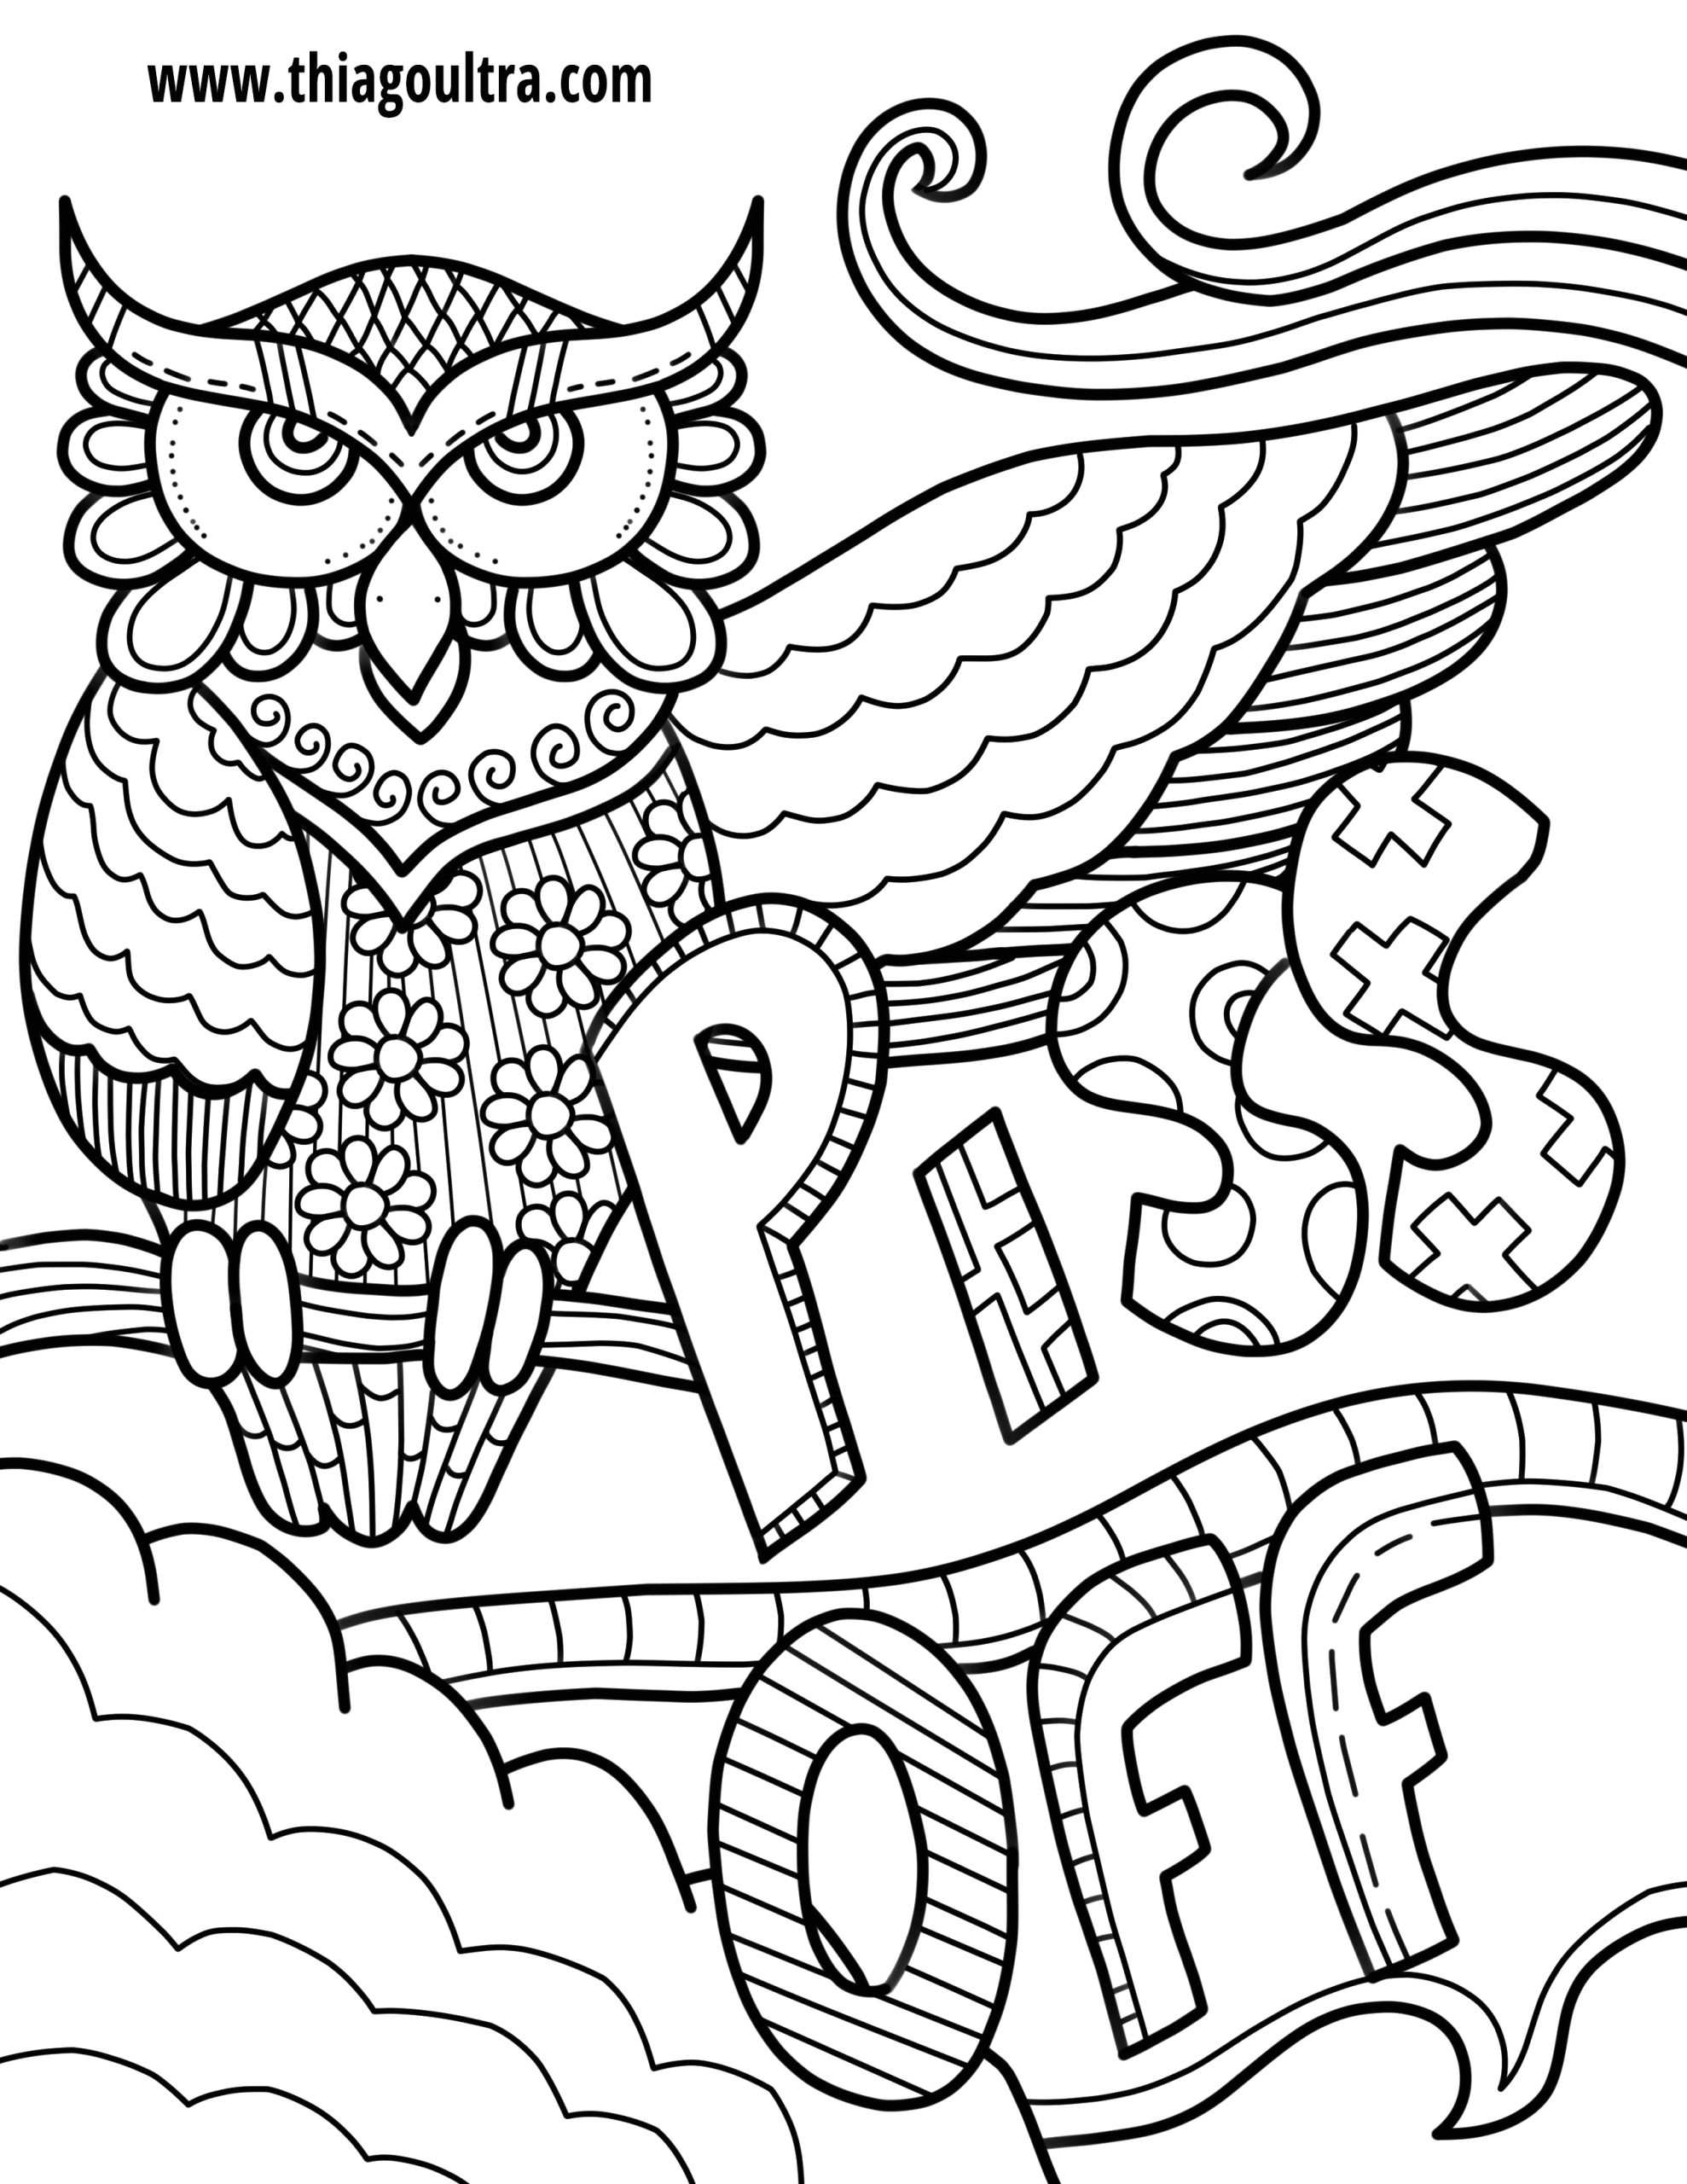 Free Printable Swearing Coloring Pages for Adults Free Printable Coloring Pages for Adults Ly Swear Words